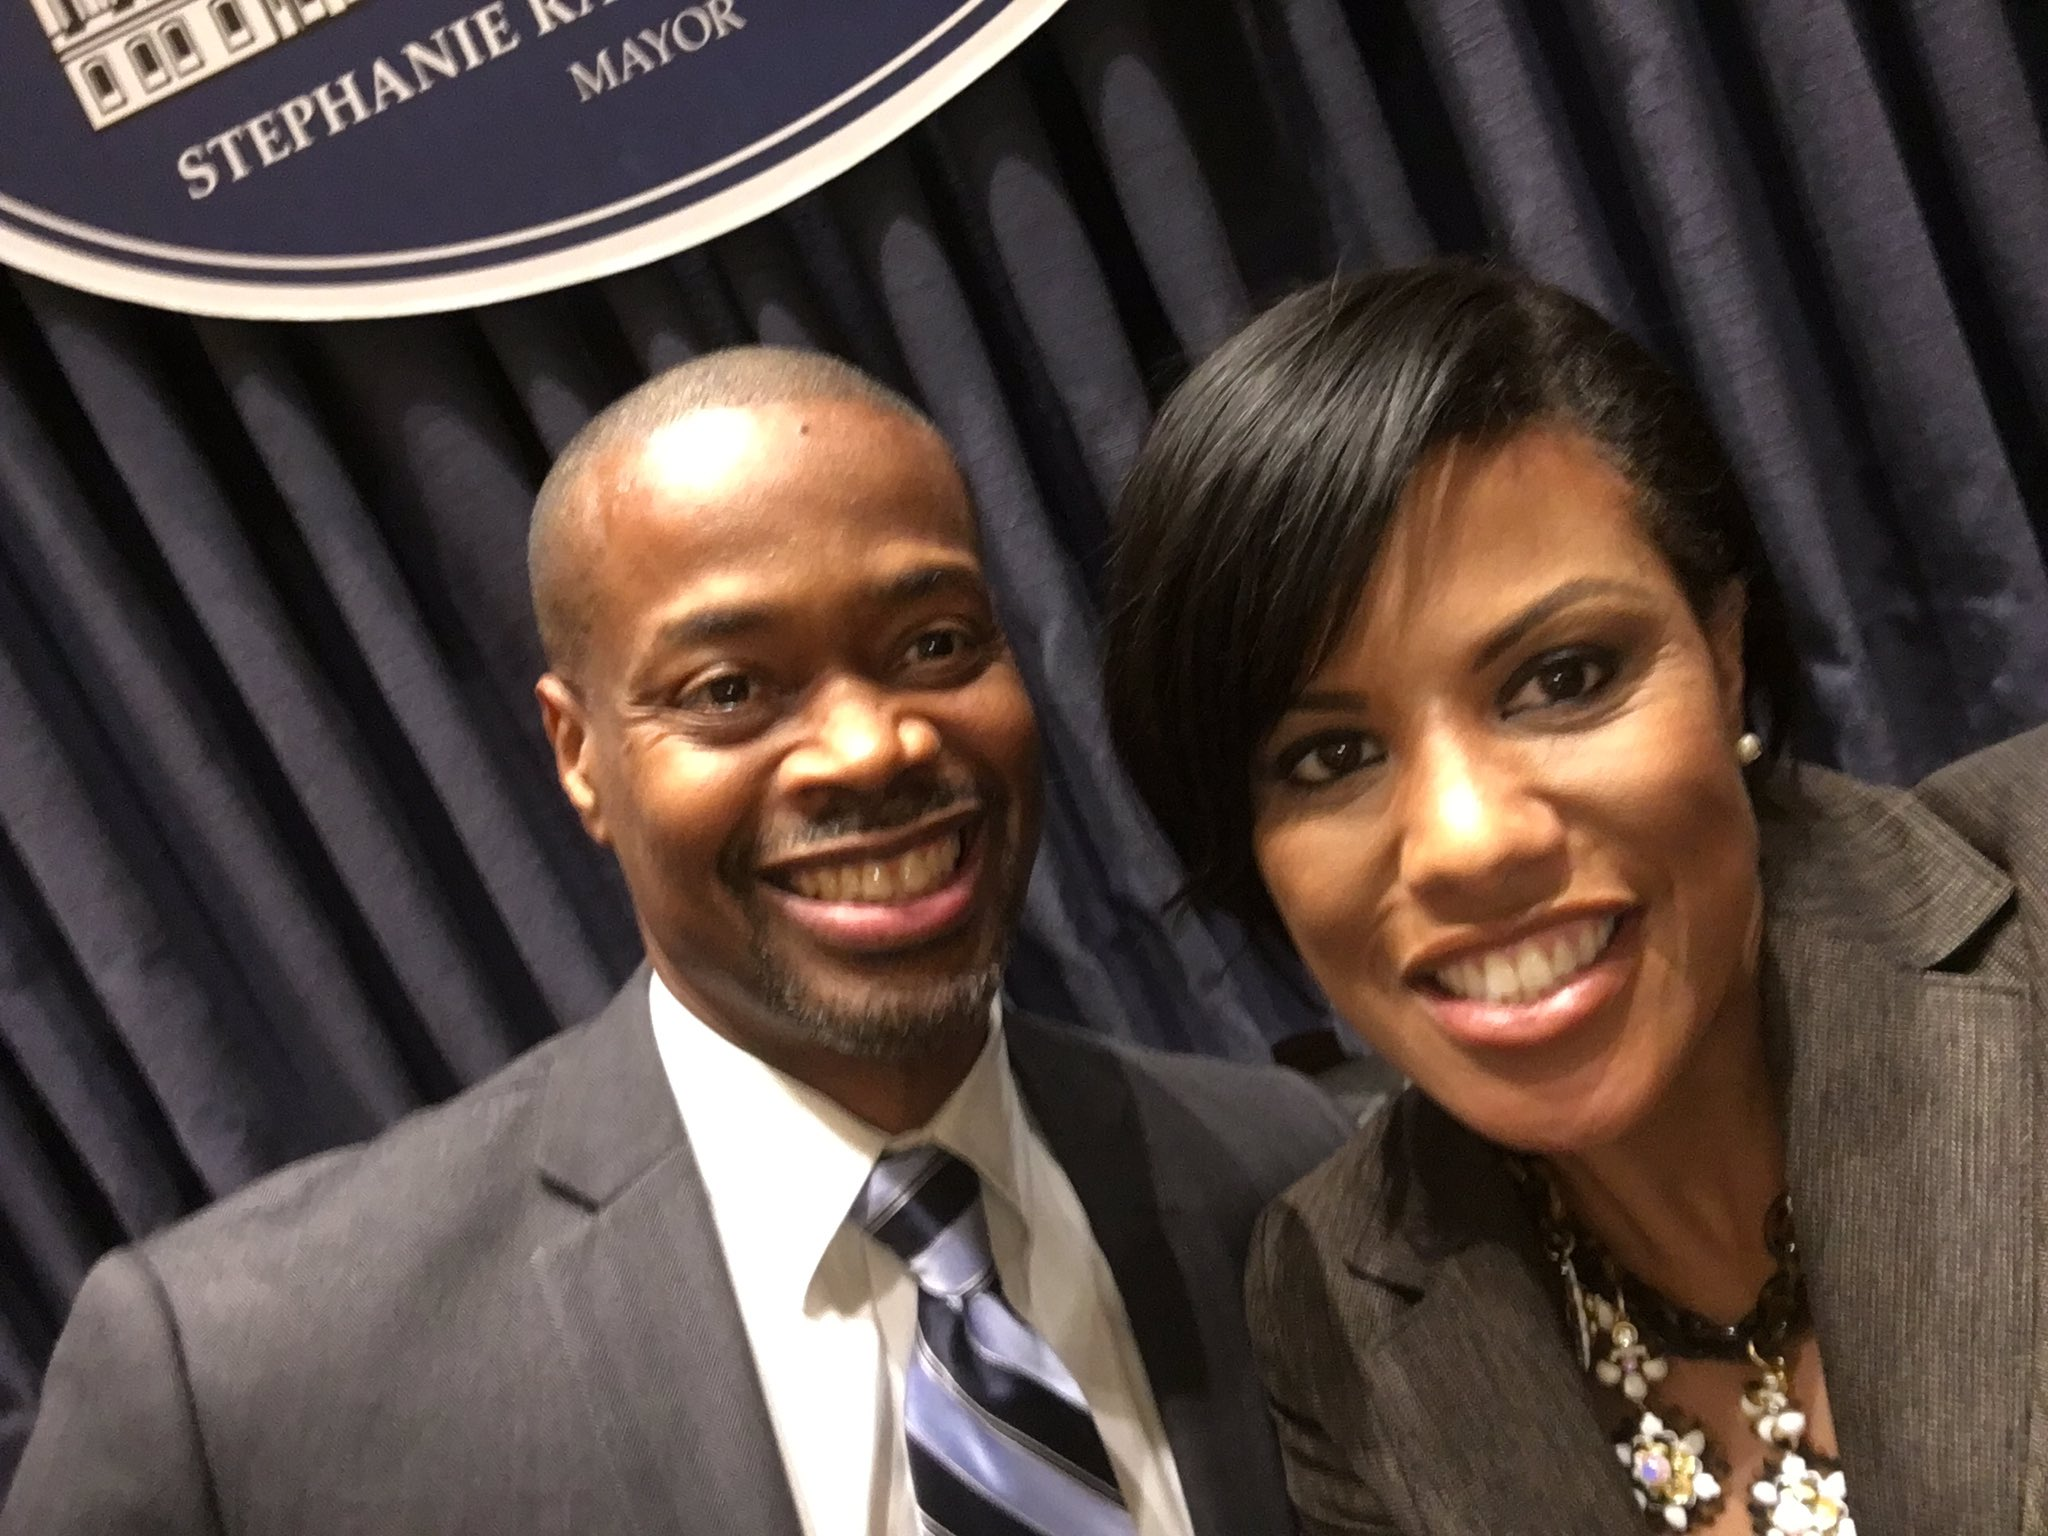 Mayor Catherine Pugh Sworn Into Office